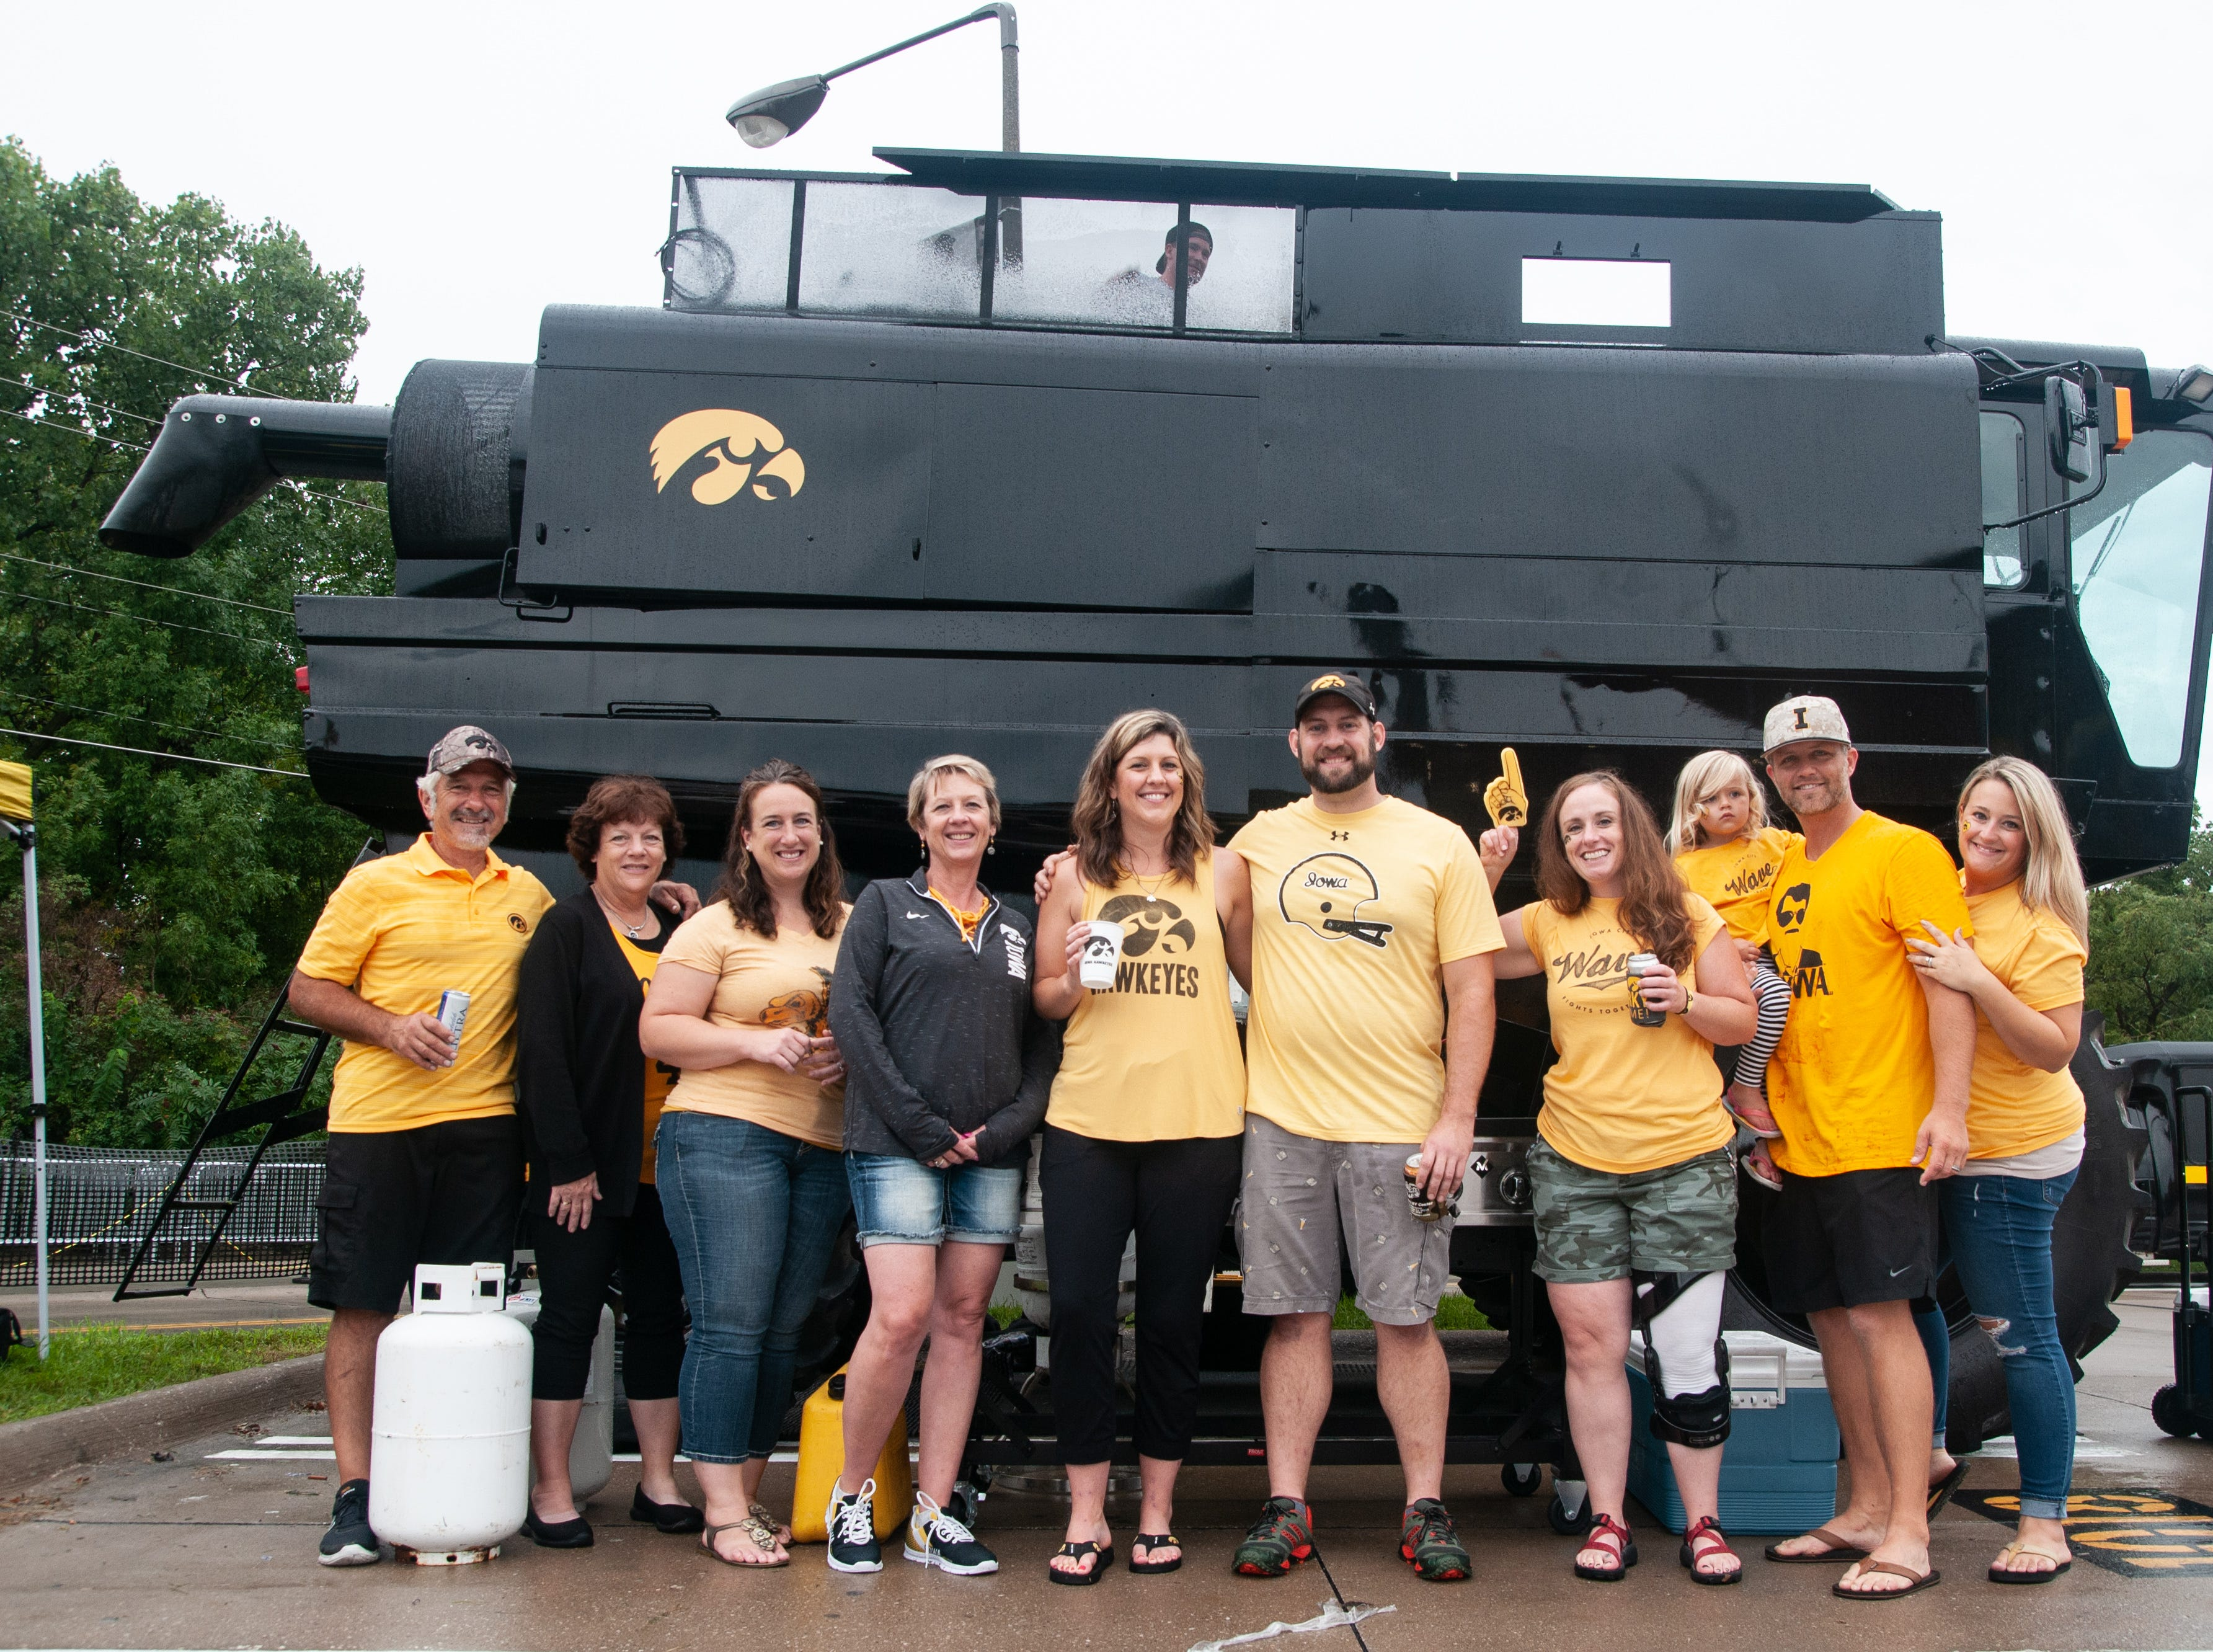 The Kinnick Combine Tailgate, Saturday, Sept. 1, 2018, while tailgating before the Iowa game against Northern Illinois in Iowa City.